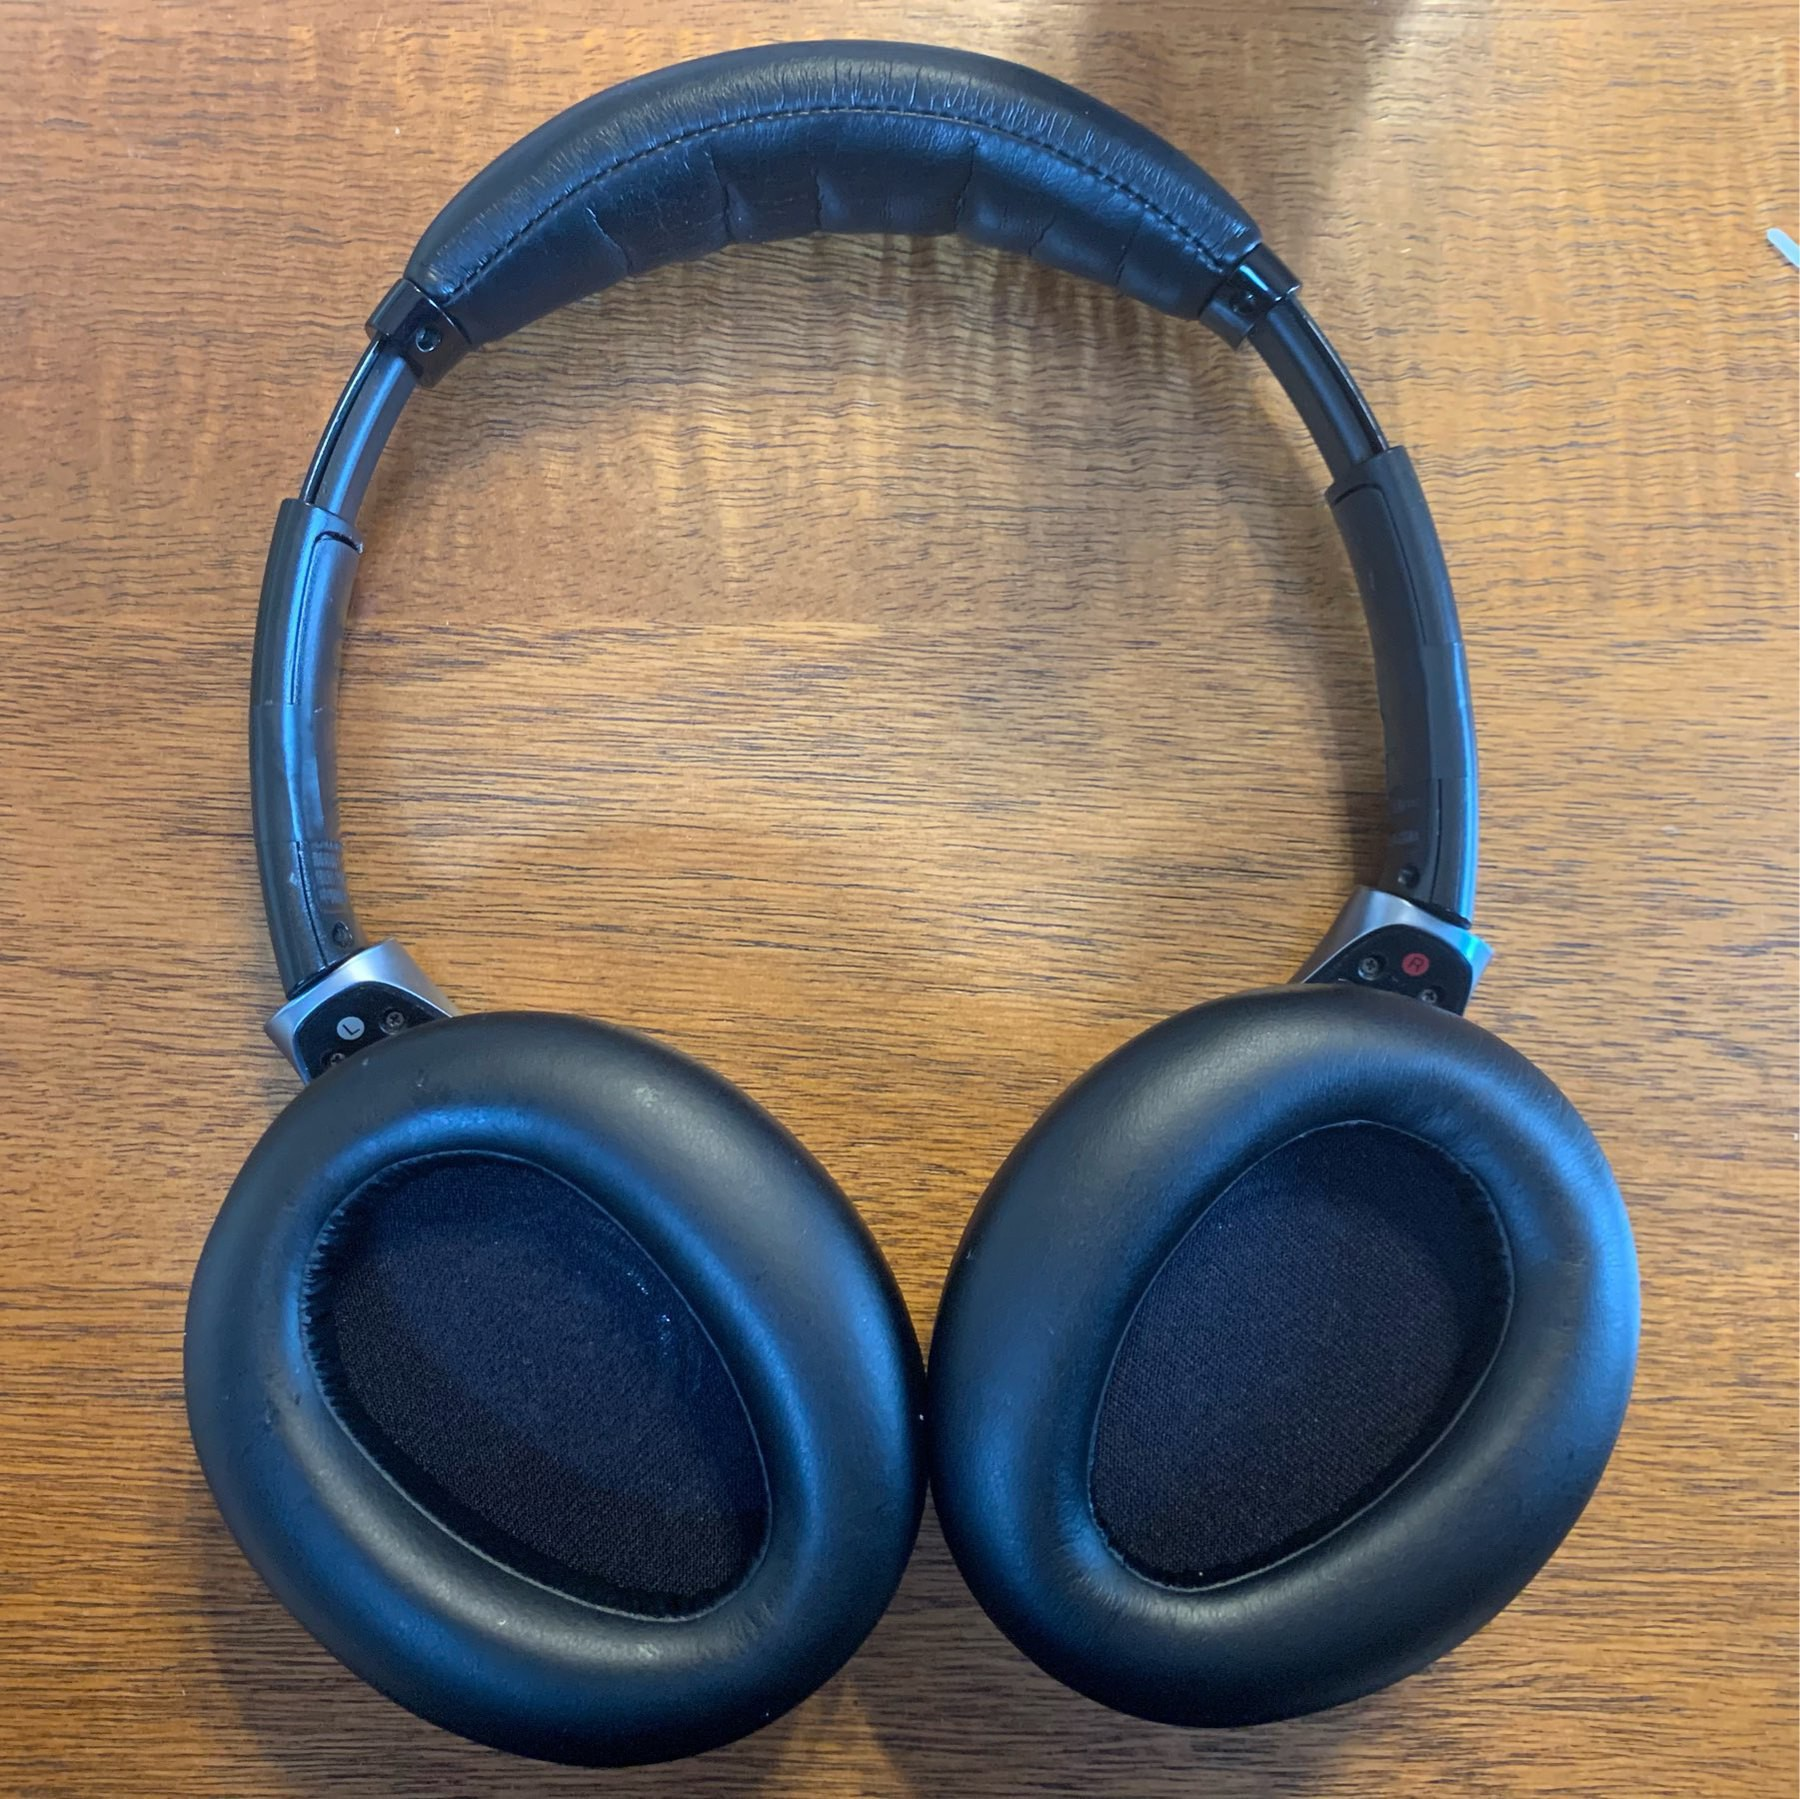 The same headphones with new ear pads. They look almost new!